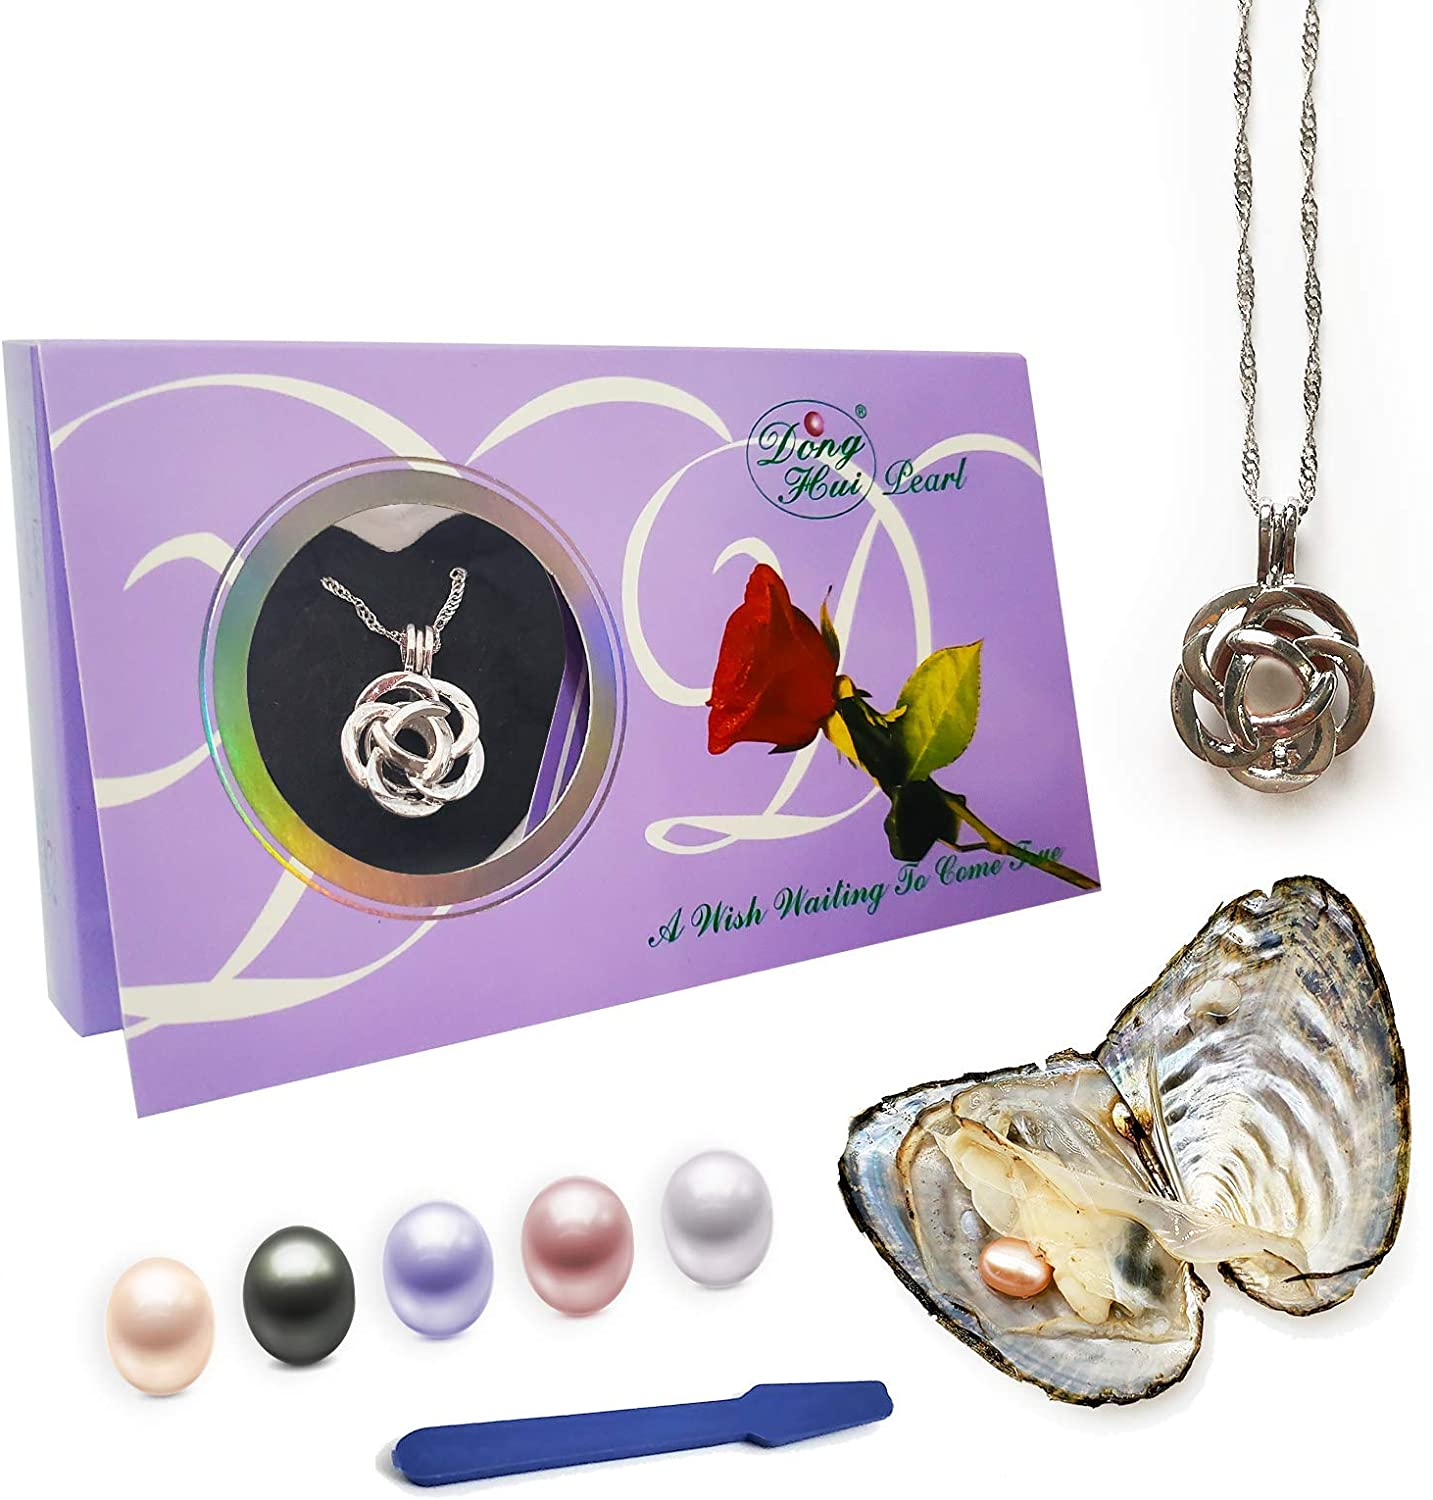 ORCHKID Oyster Pearl Necklace Kit, DIY Necklace Making Kit, Mysterious Pearl Gift Set, Oyster with Pearl Inside, Elegant Pendant with 20